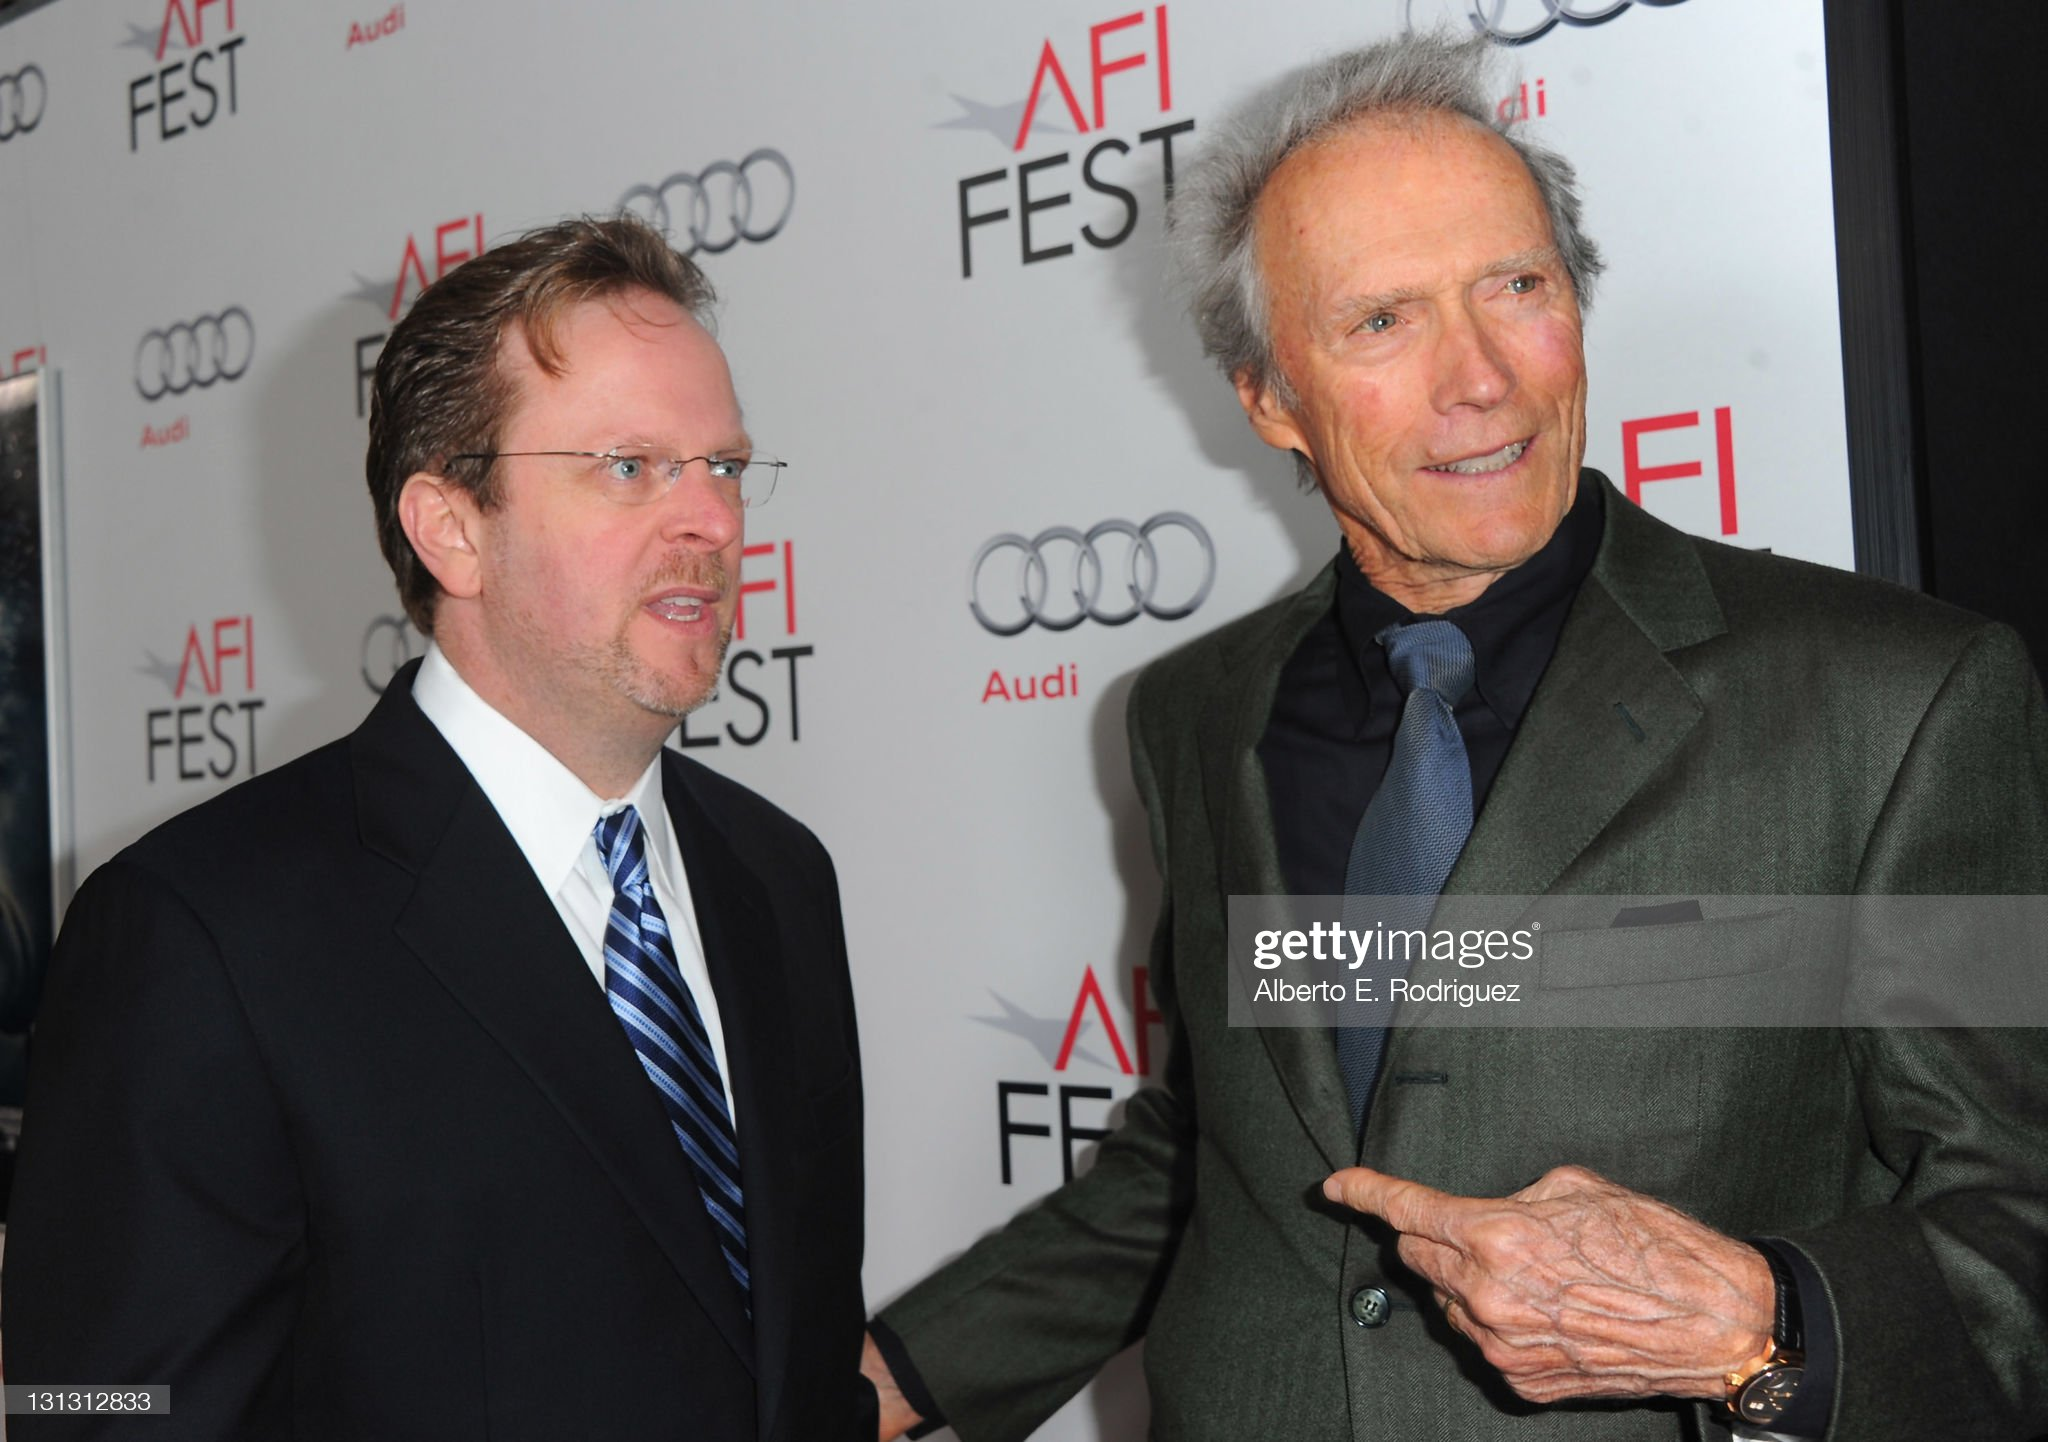 ¿Cuánto mide Clint Eastwood? - Altura - Real height - Página 2 Bob-gazzale-and-director-clint-eastwood-arrive-at-the-j-edgar-opening-picture-id131312833?s=2048x2048